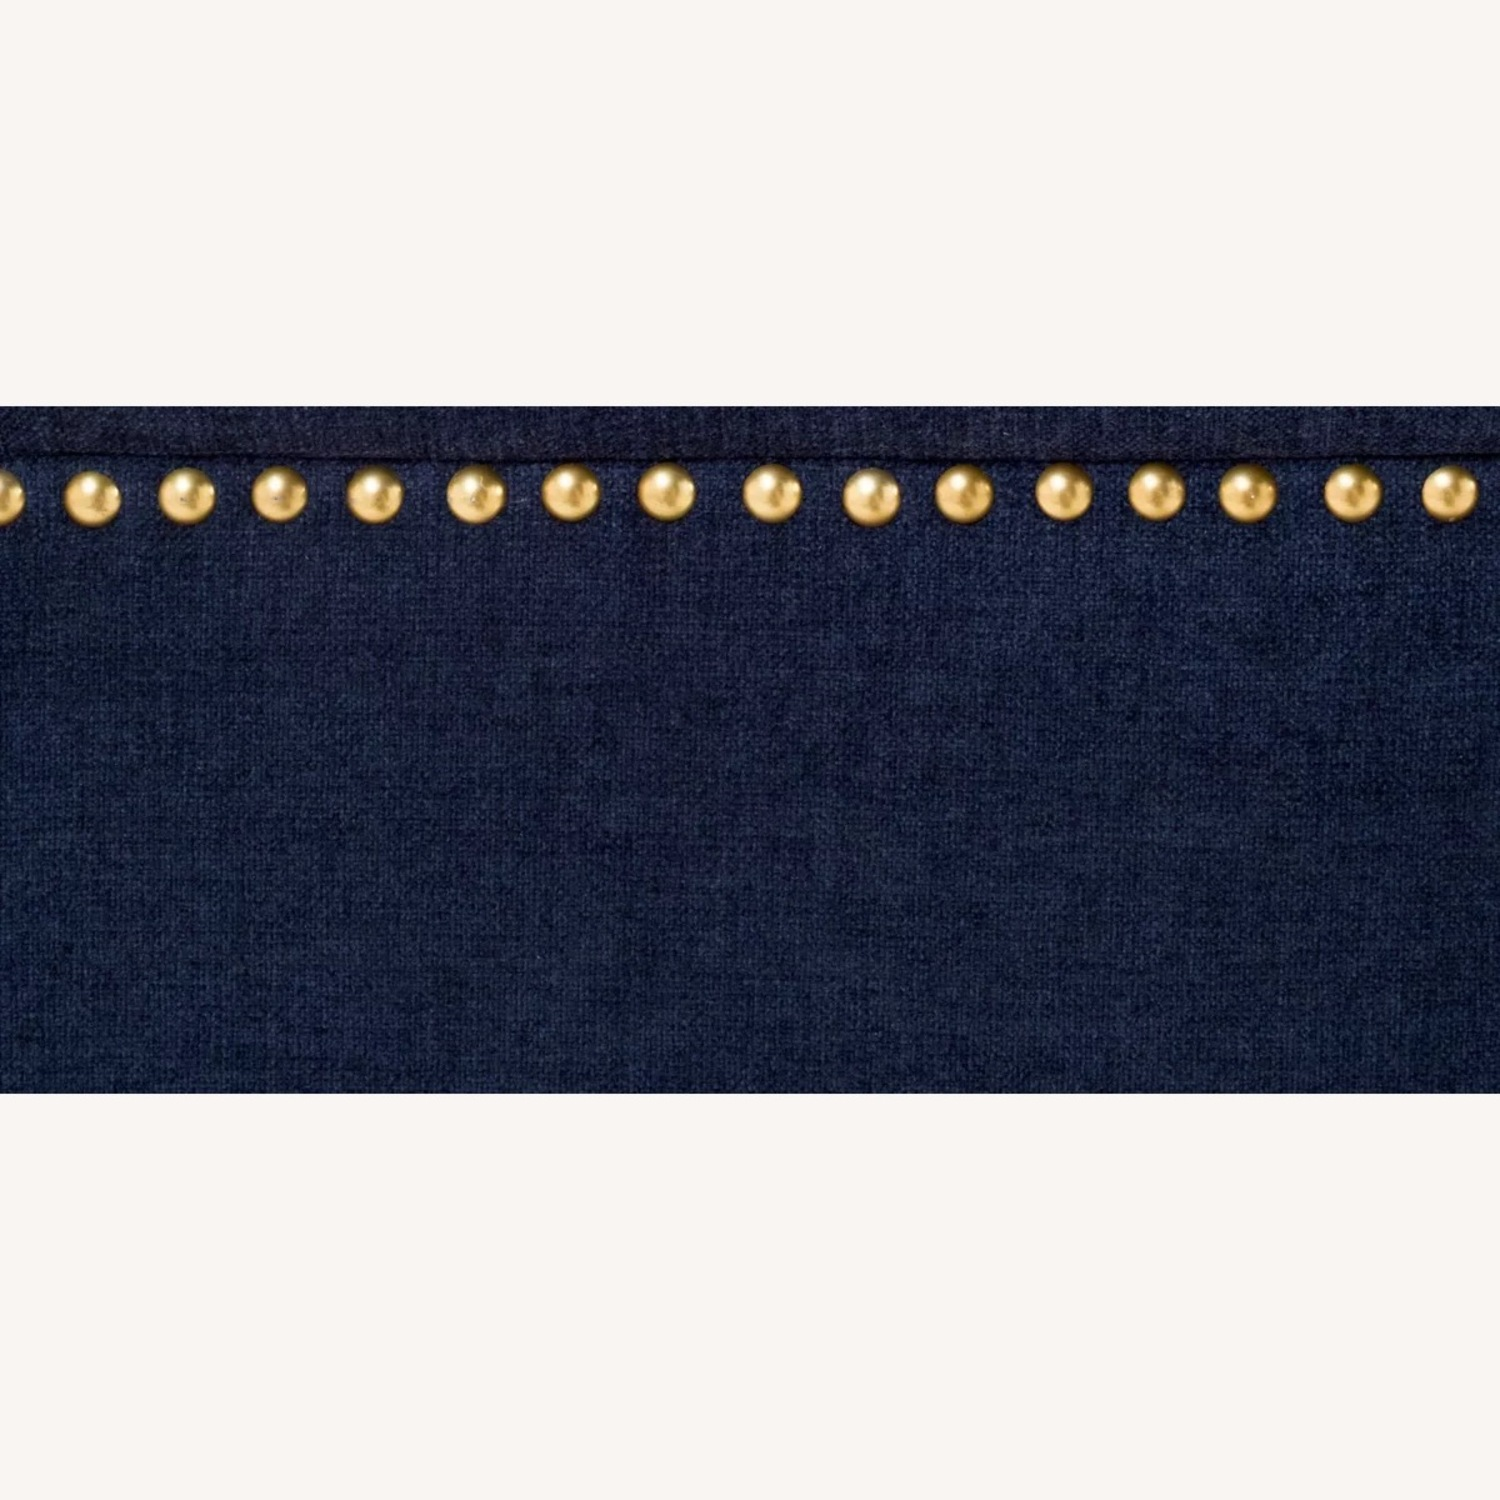 Raymour Flanigan Navy Tufted Loveseat - image-9